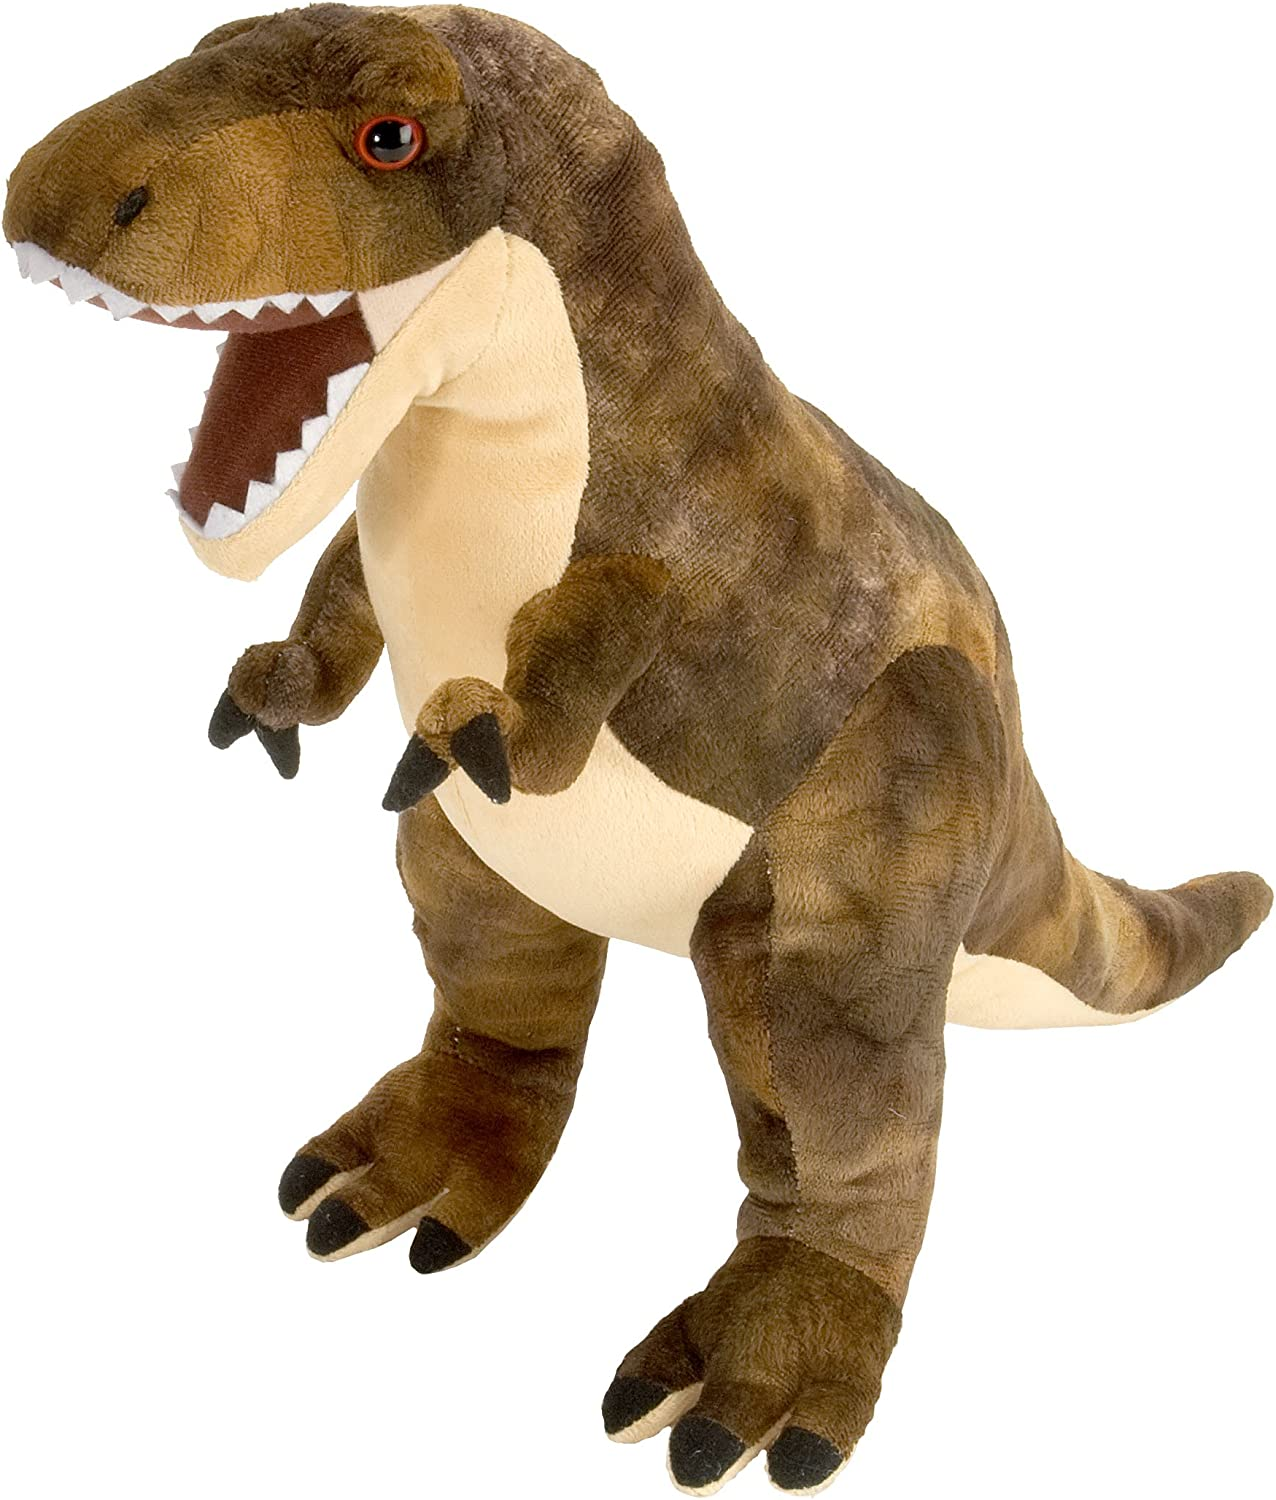 Wild Republic T-Rex Plush, Dinosaur Stuffed Animal, Plush Toy, Gifts for Kids, Dinosauria 15""